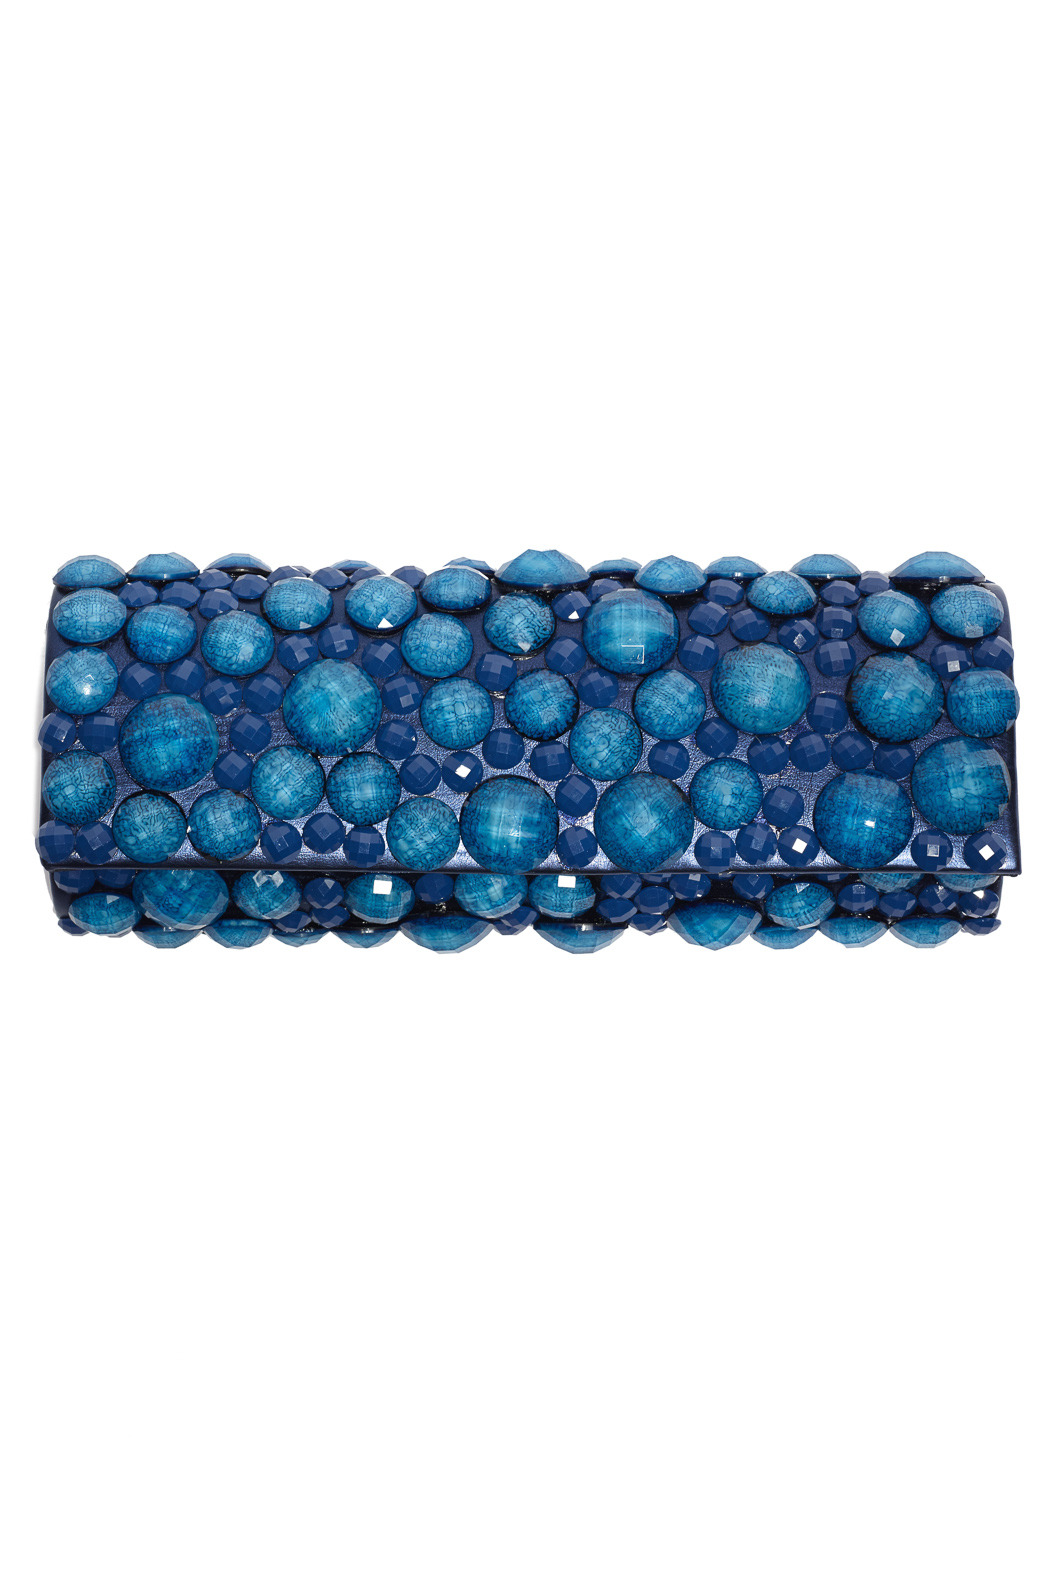 Sondra Roberts Blue Beaded Clutch - Front Cropped Image